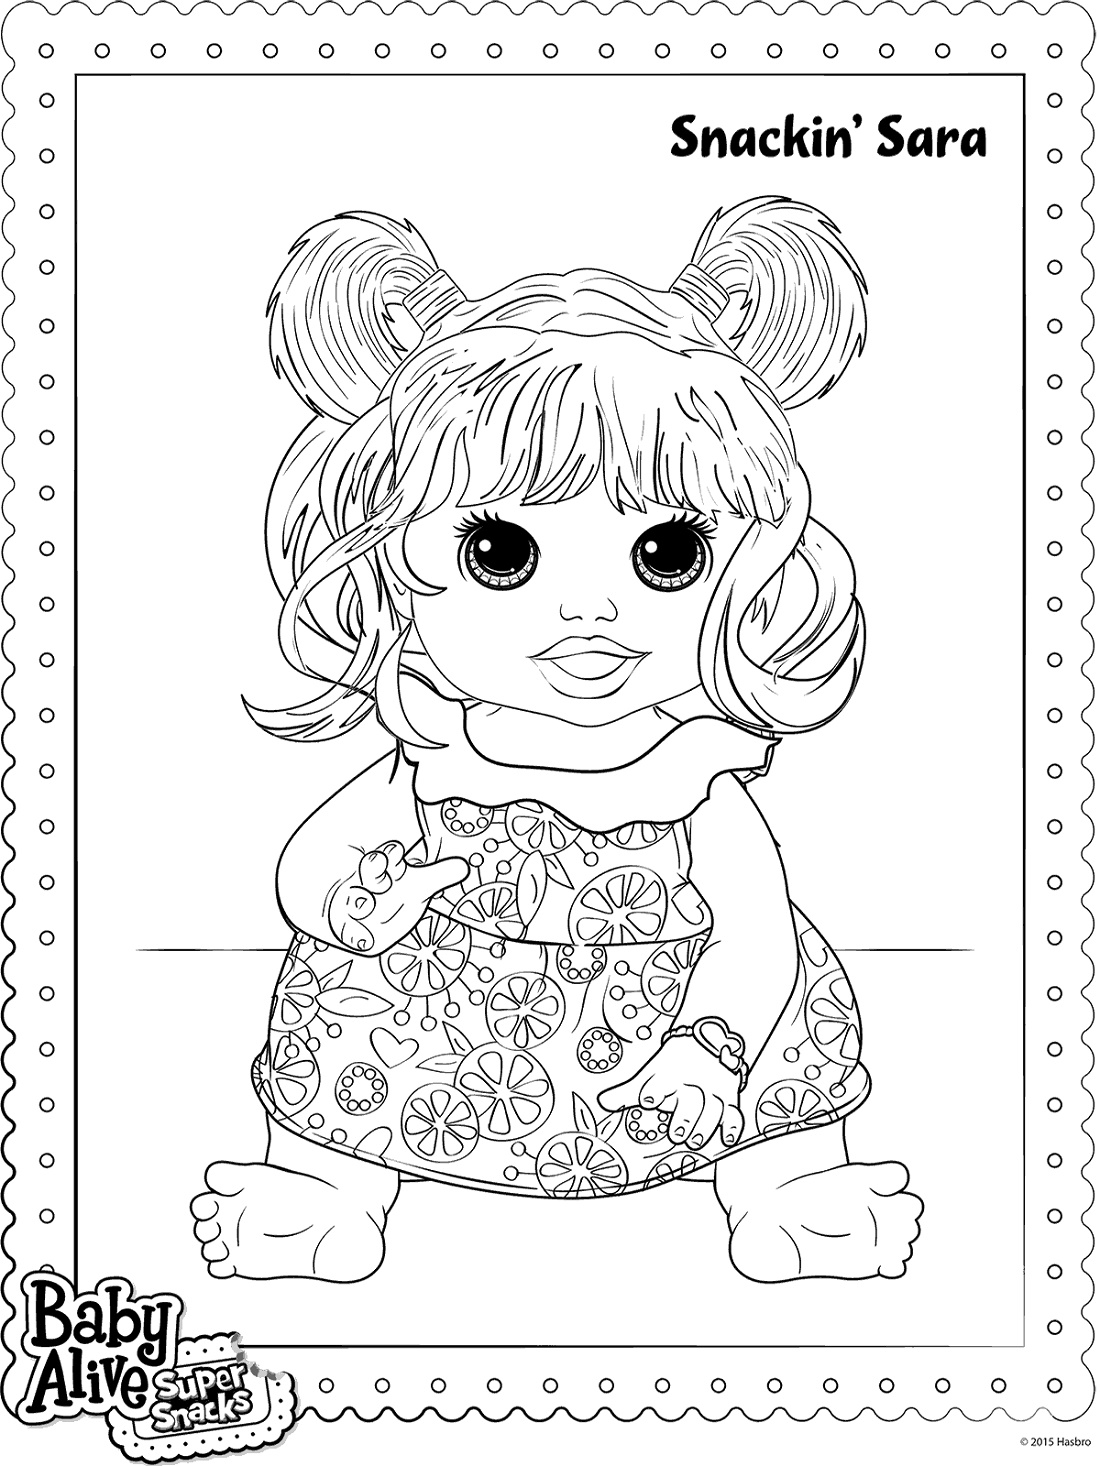 Baby Alive Coloring Pages Snackin Sara